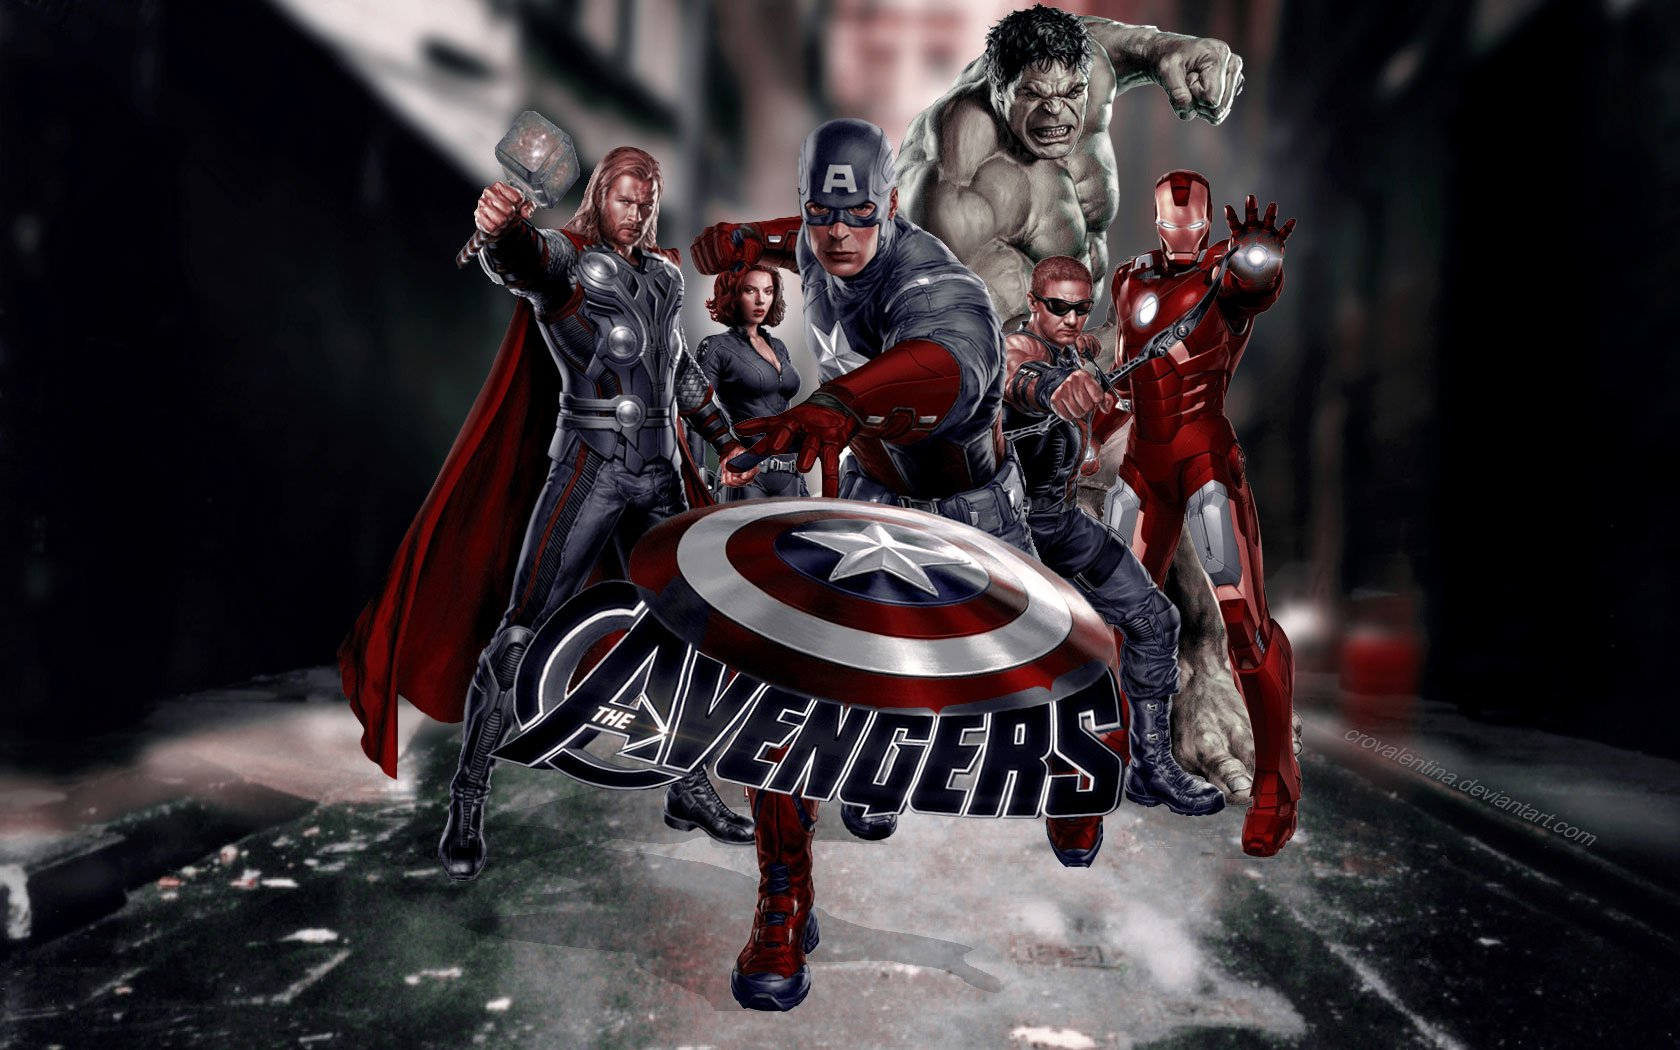 Avengers wallpaper and background image 1680x1050 id - Avengers hd wallpapers free download ...